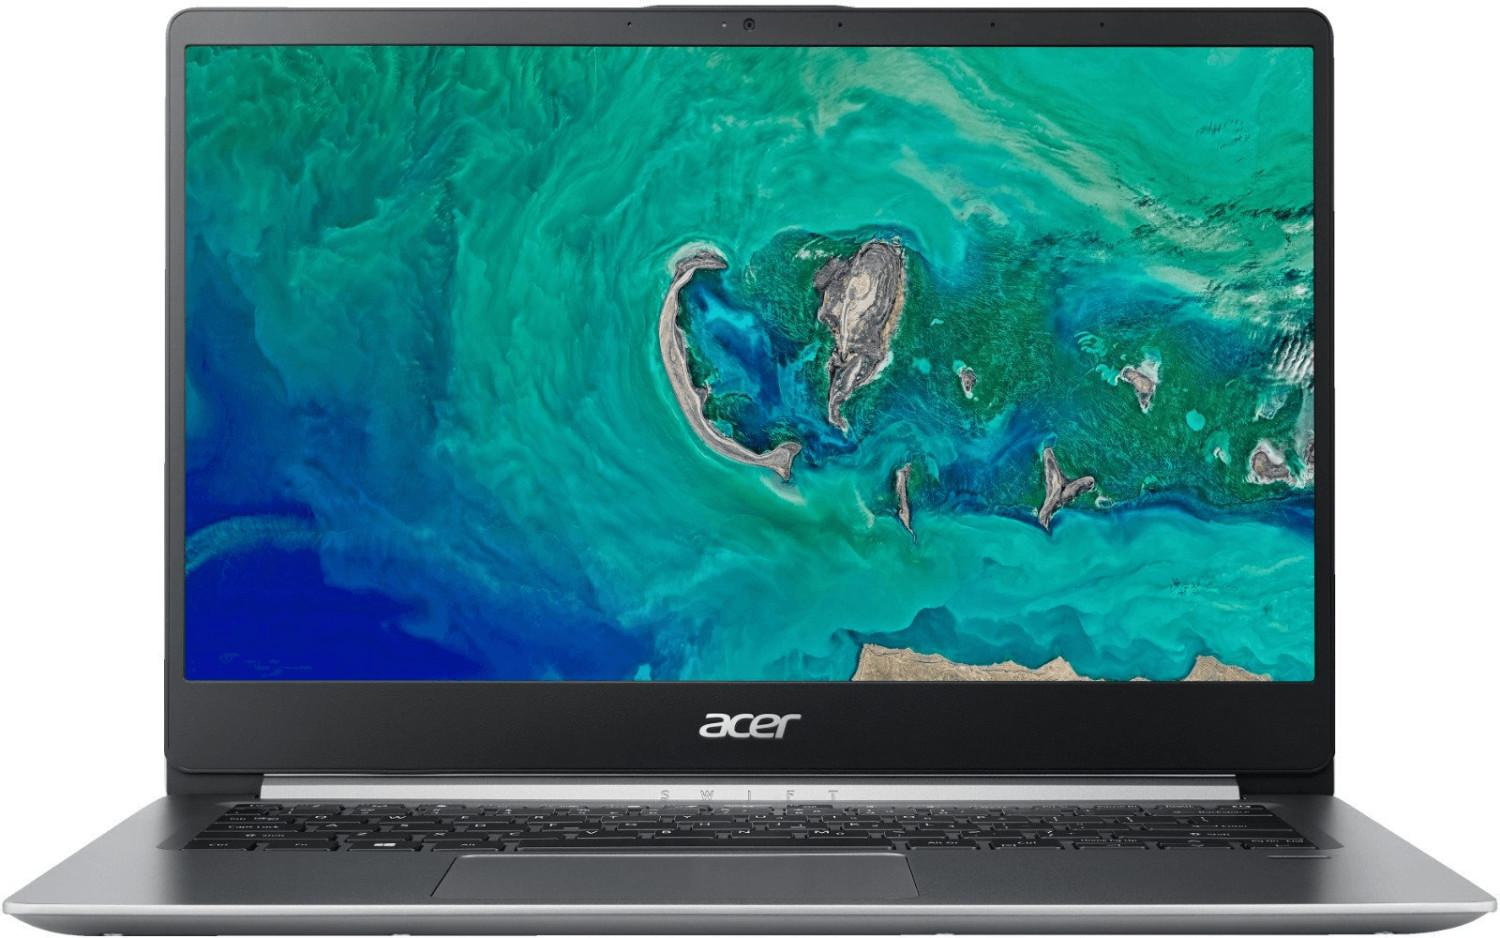 Image du PC portable Acer Swift 1 SF114-32-P3BW Argent - Gemini Lake SSD IPS